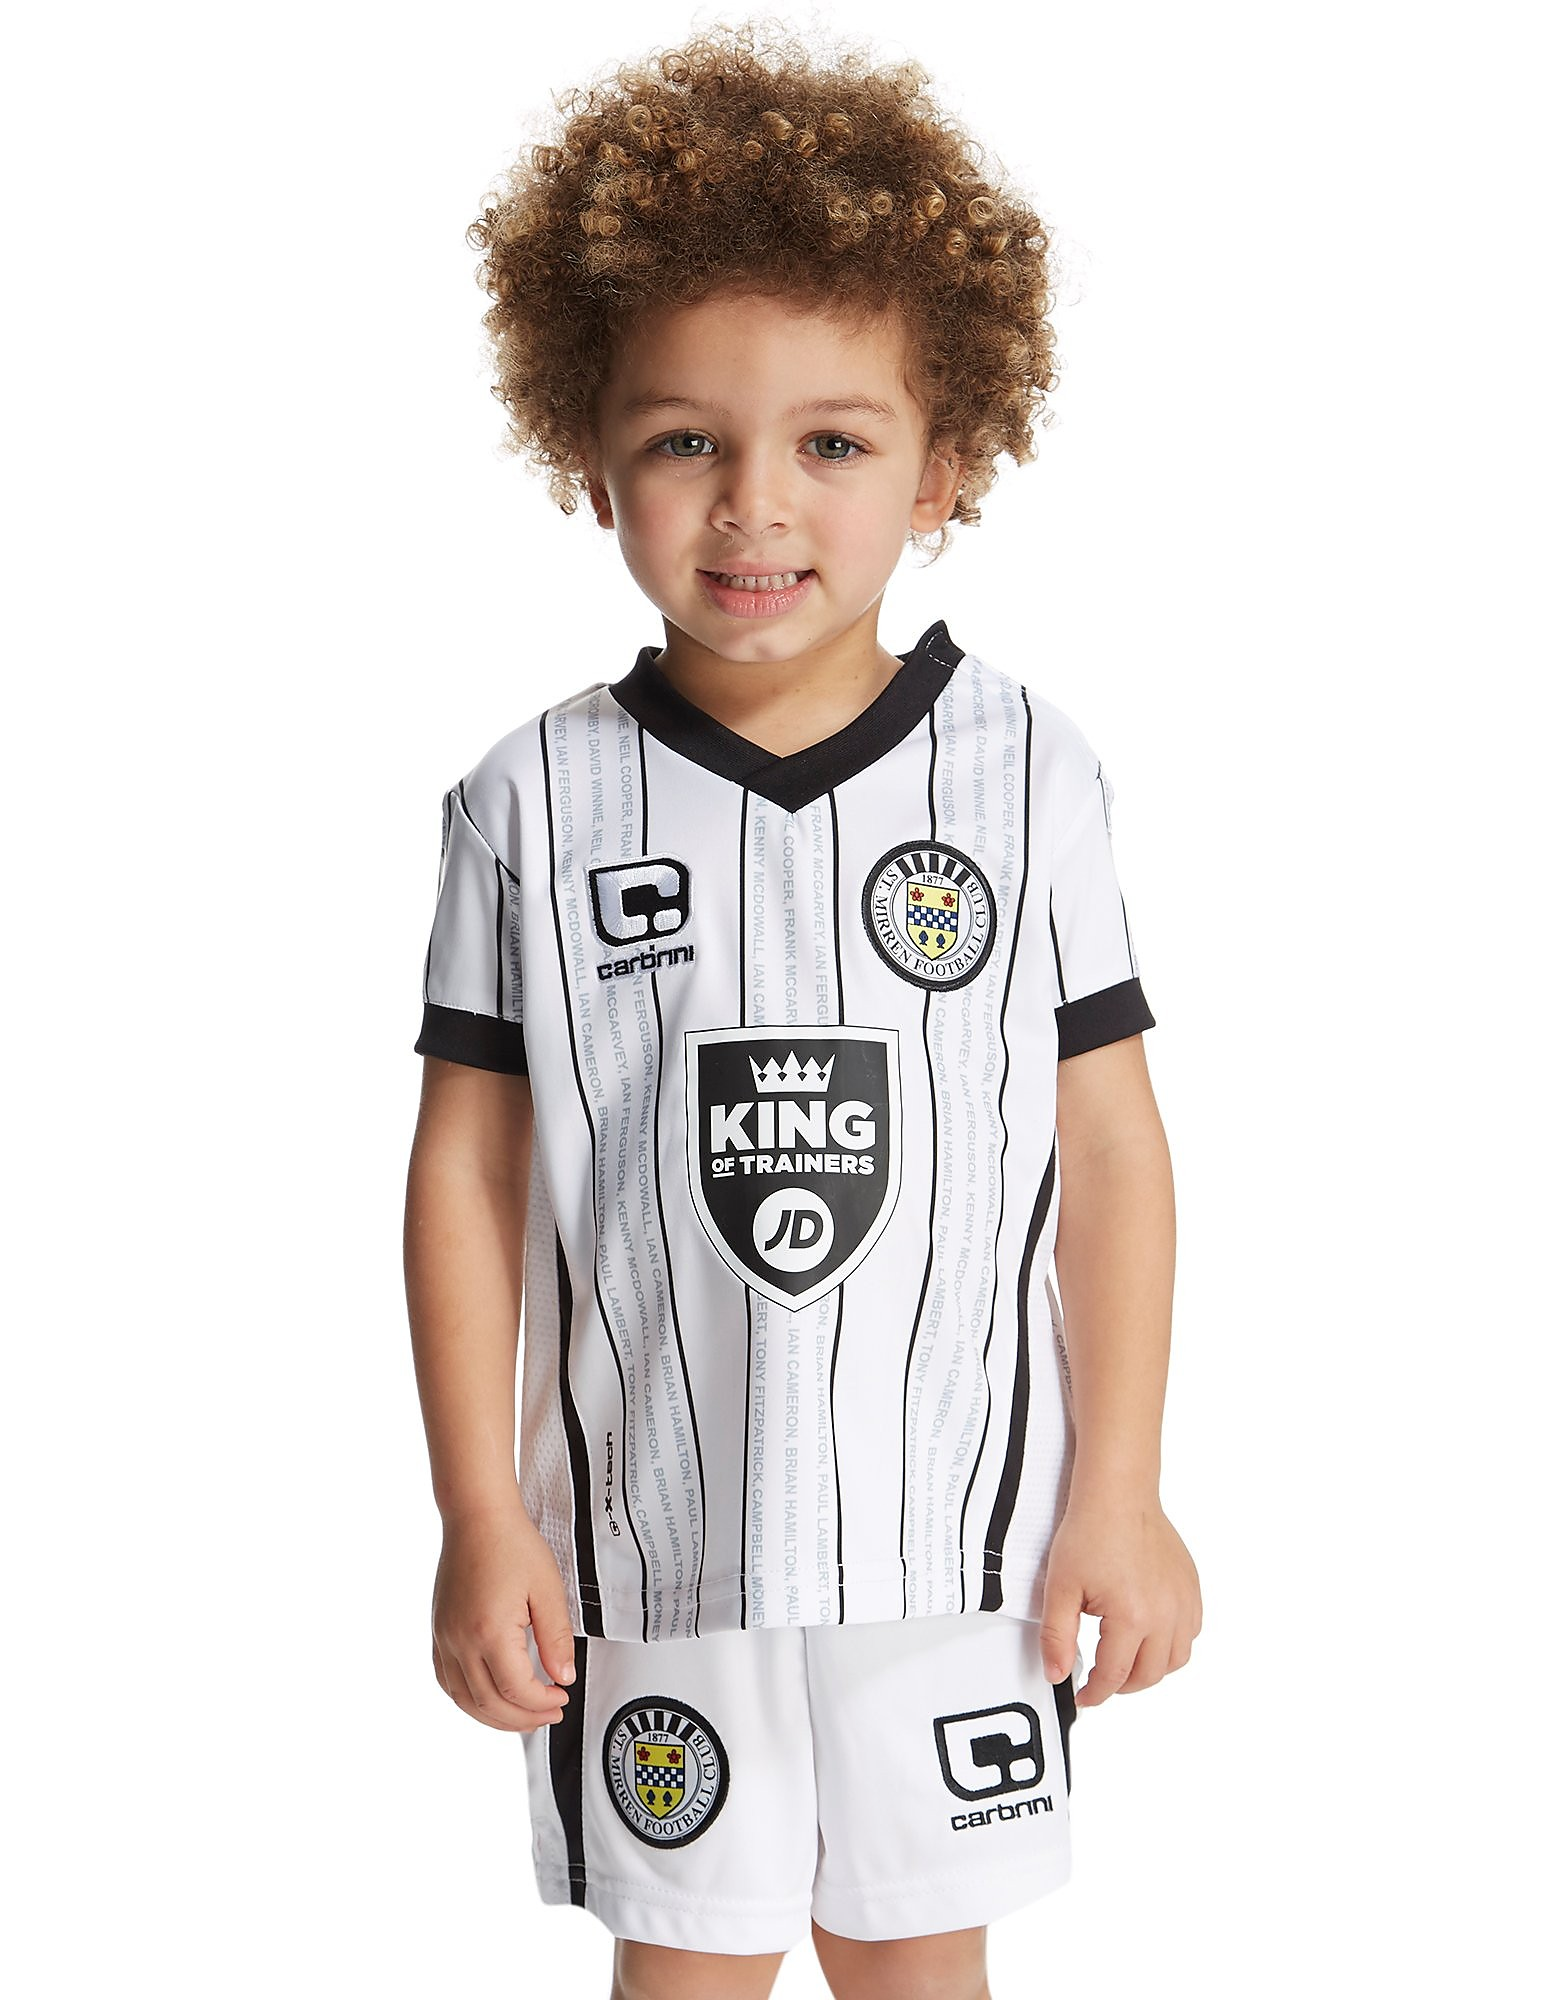 Carbrini St Mirren FC 2016/17 Home Kit Infant